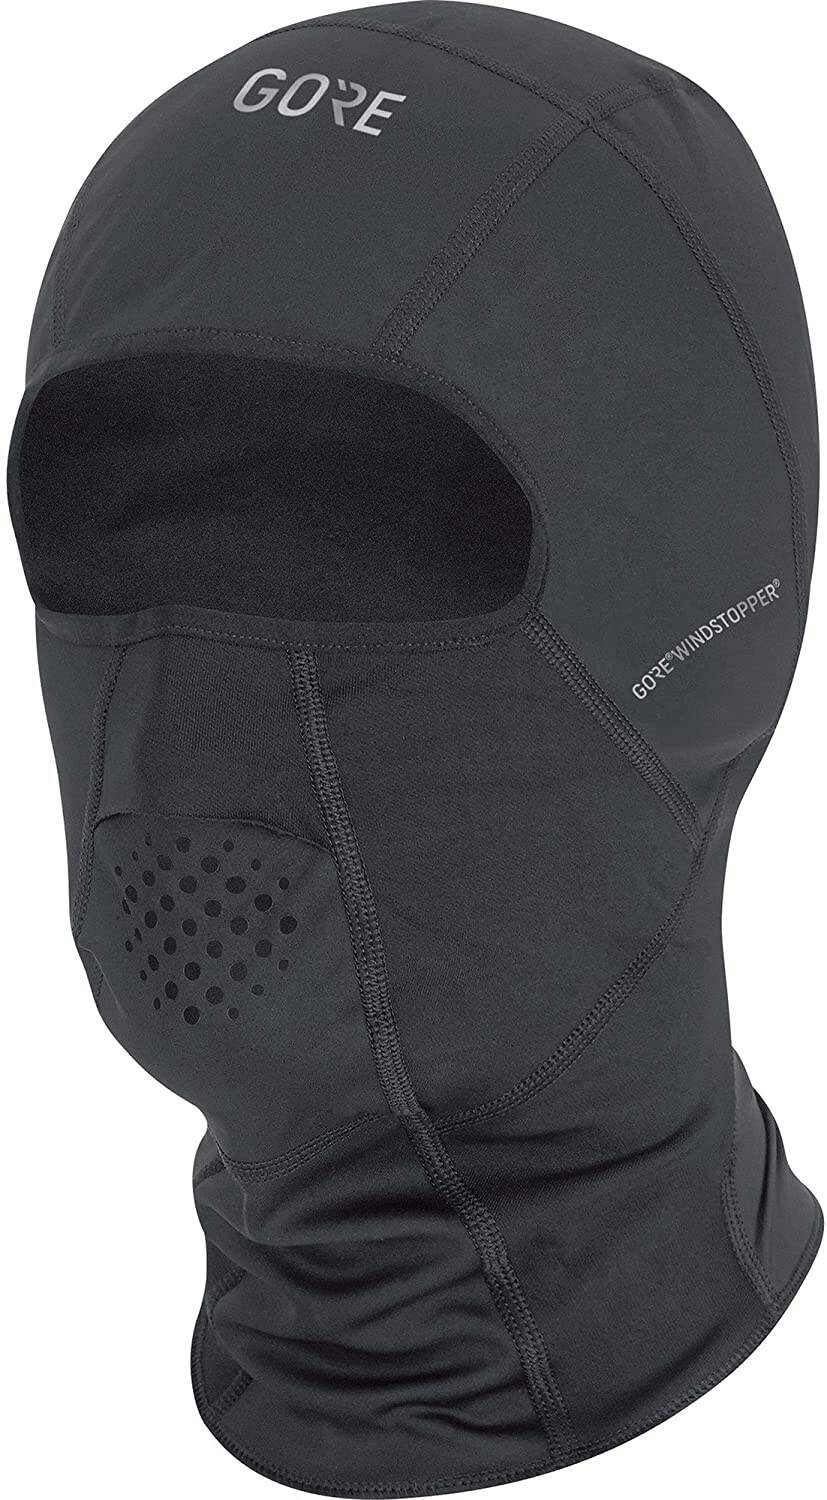 GORE WEAR Unisex Windproof Balaclava